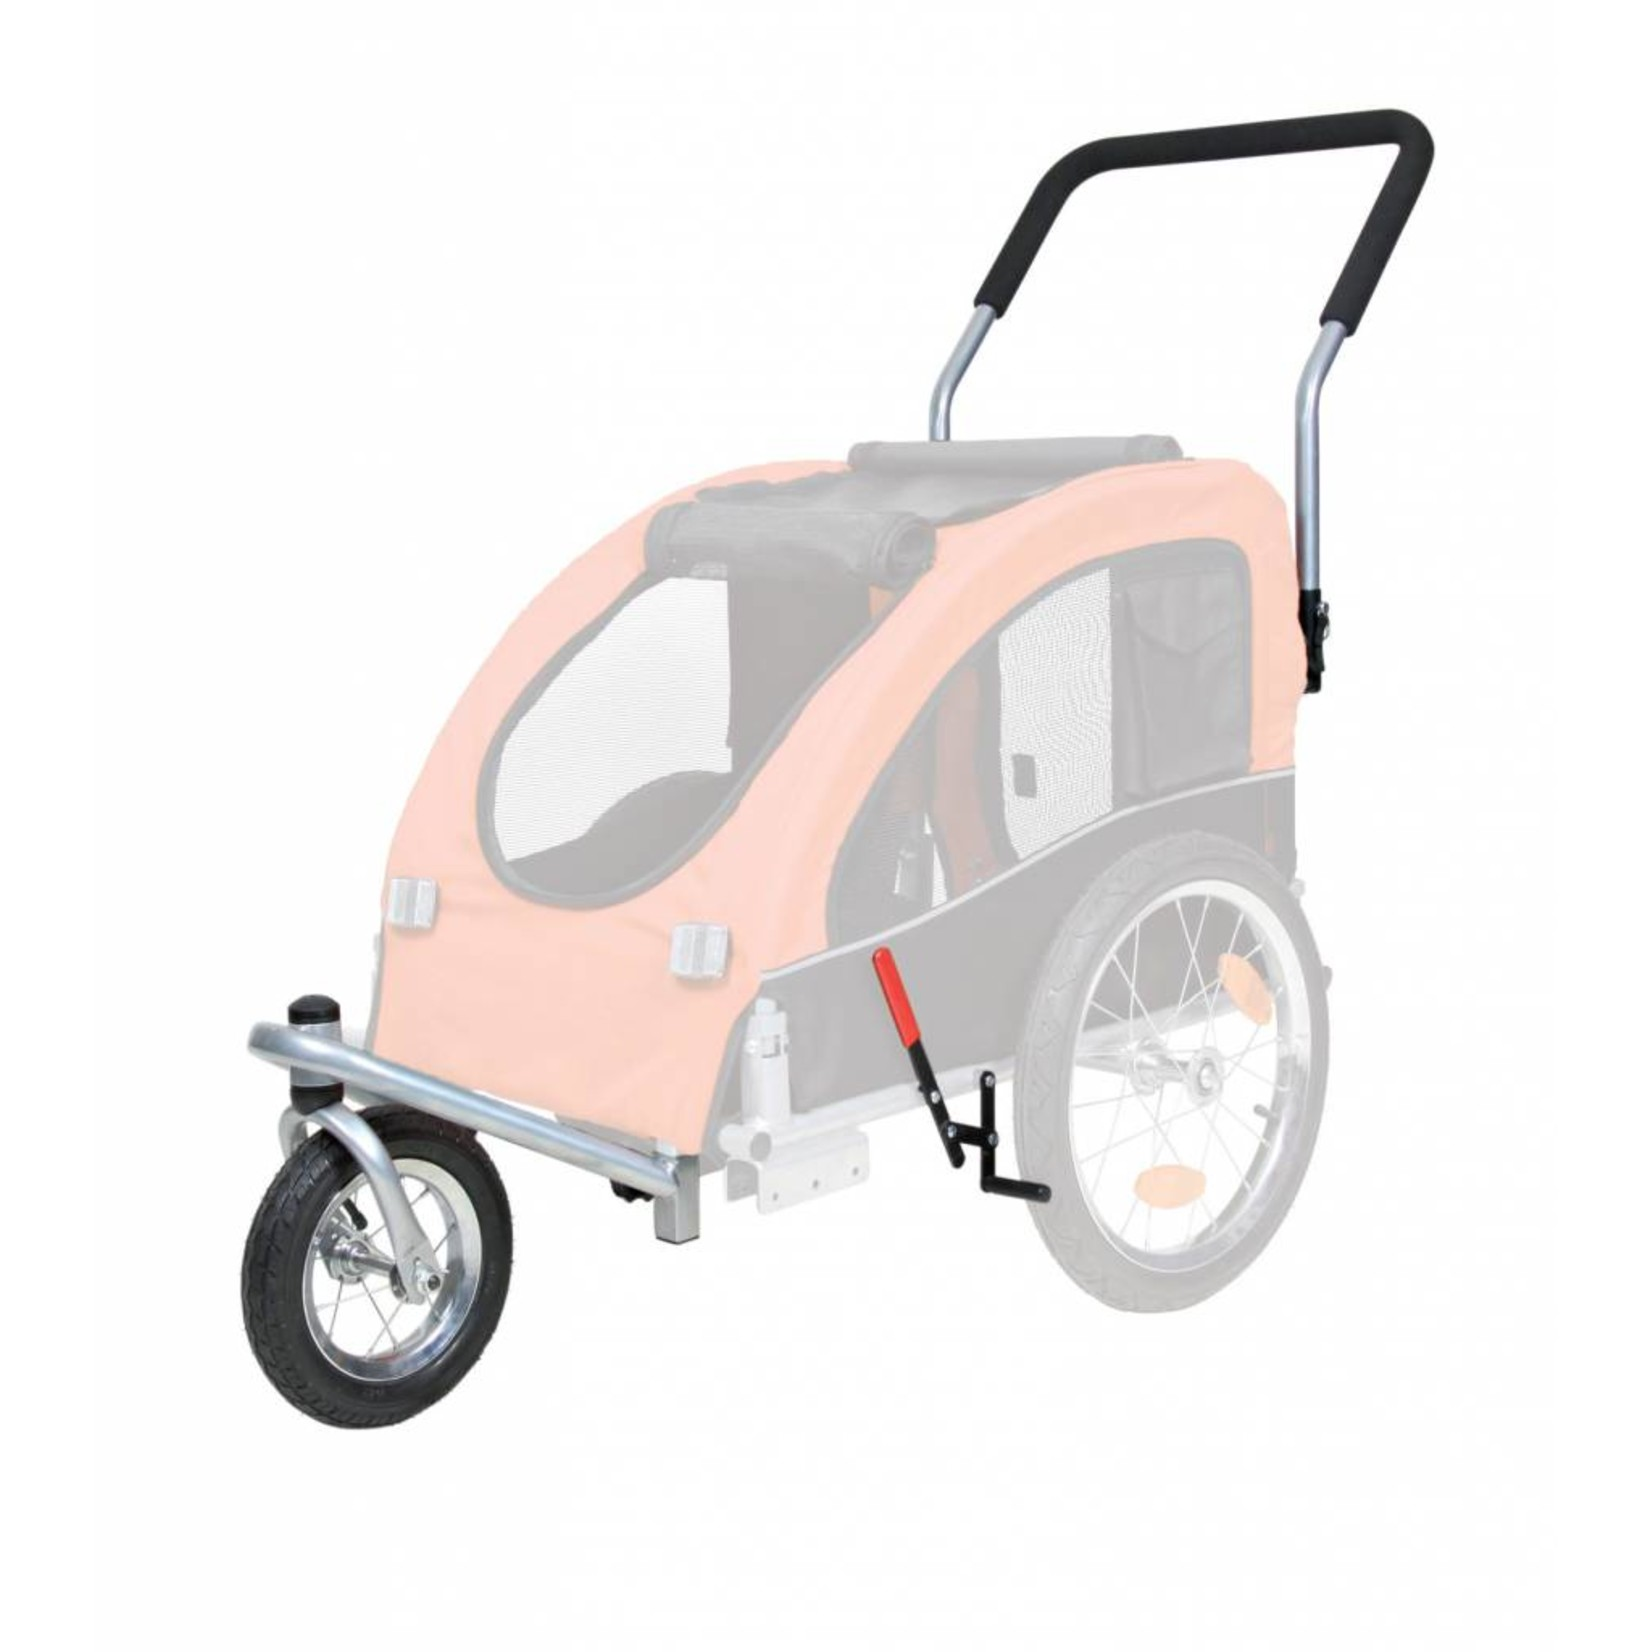 Trixie Conversion Kit for Trixie Jogging Buggy